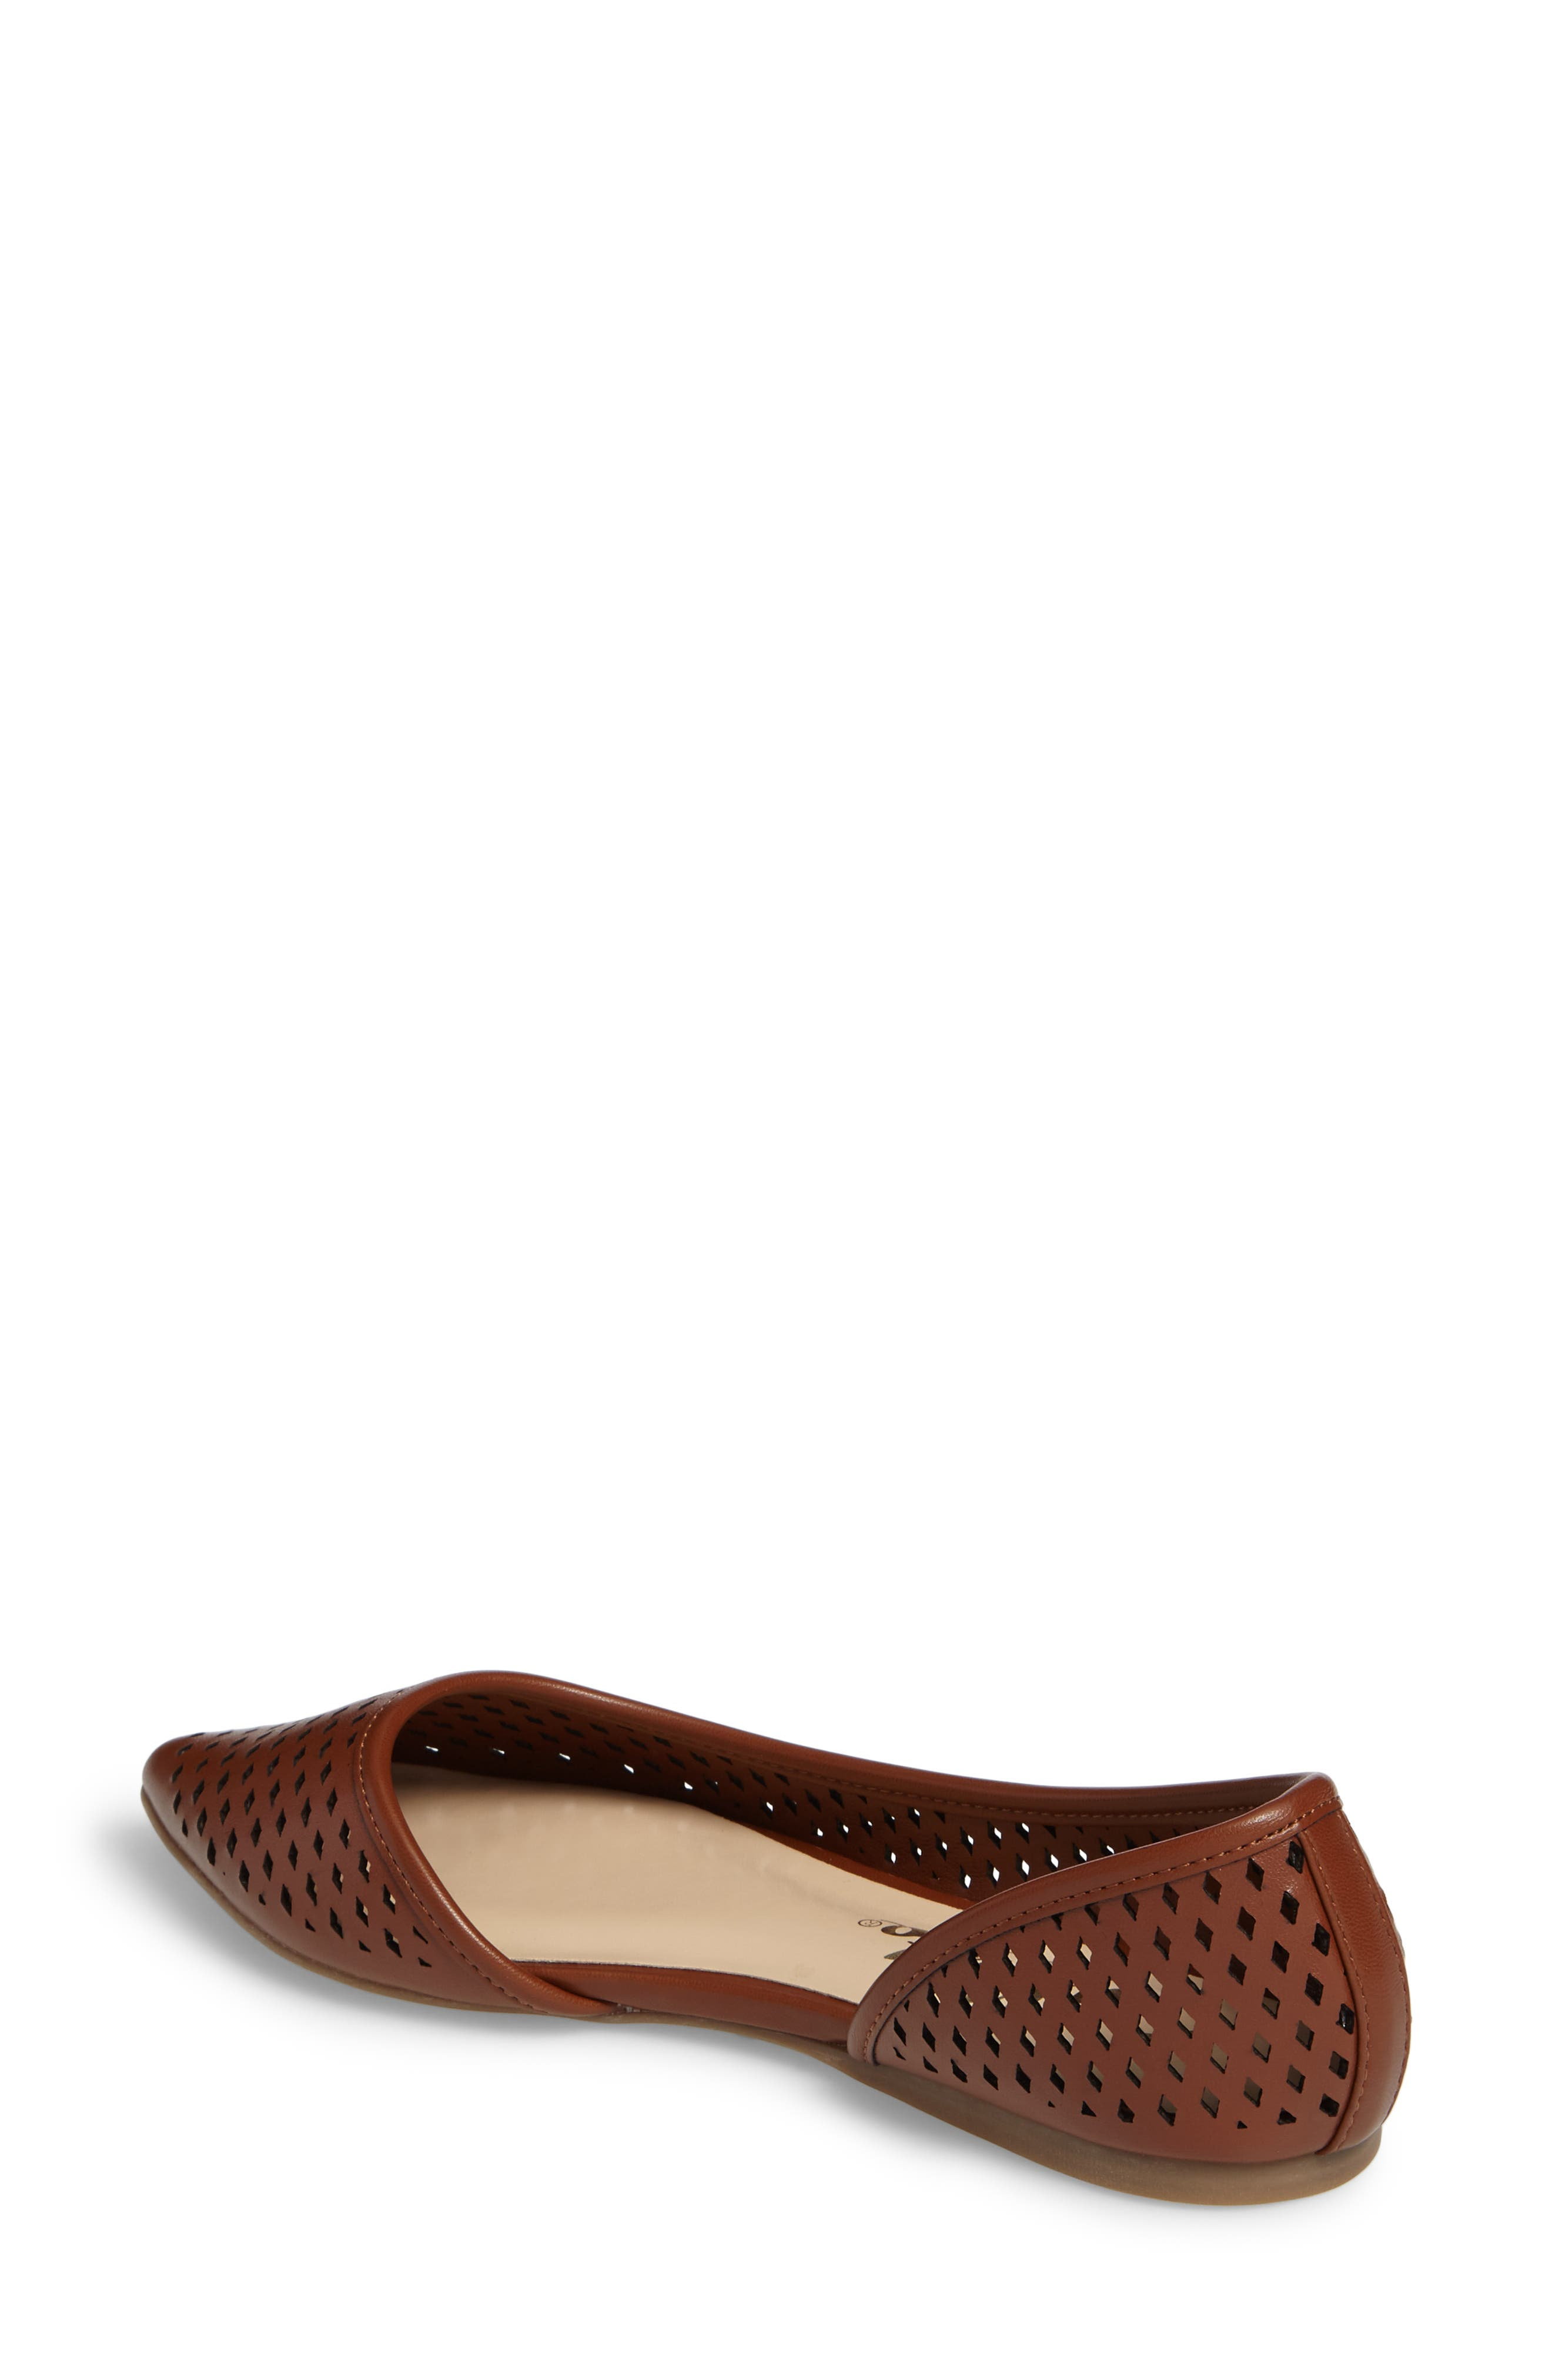 Swiftye Half d'Orsay Flat,                             Alternate thumbnail 2, color,                             Tan Synthetic Leather